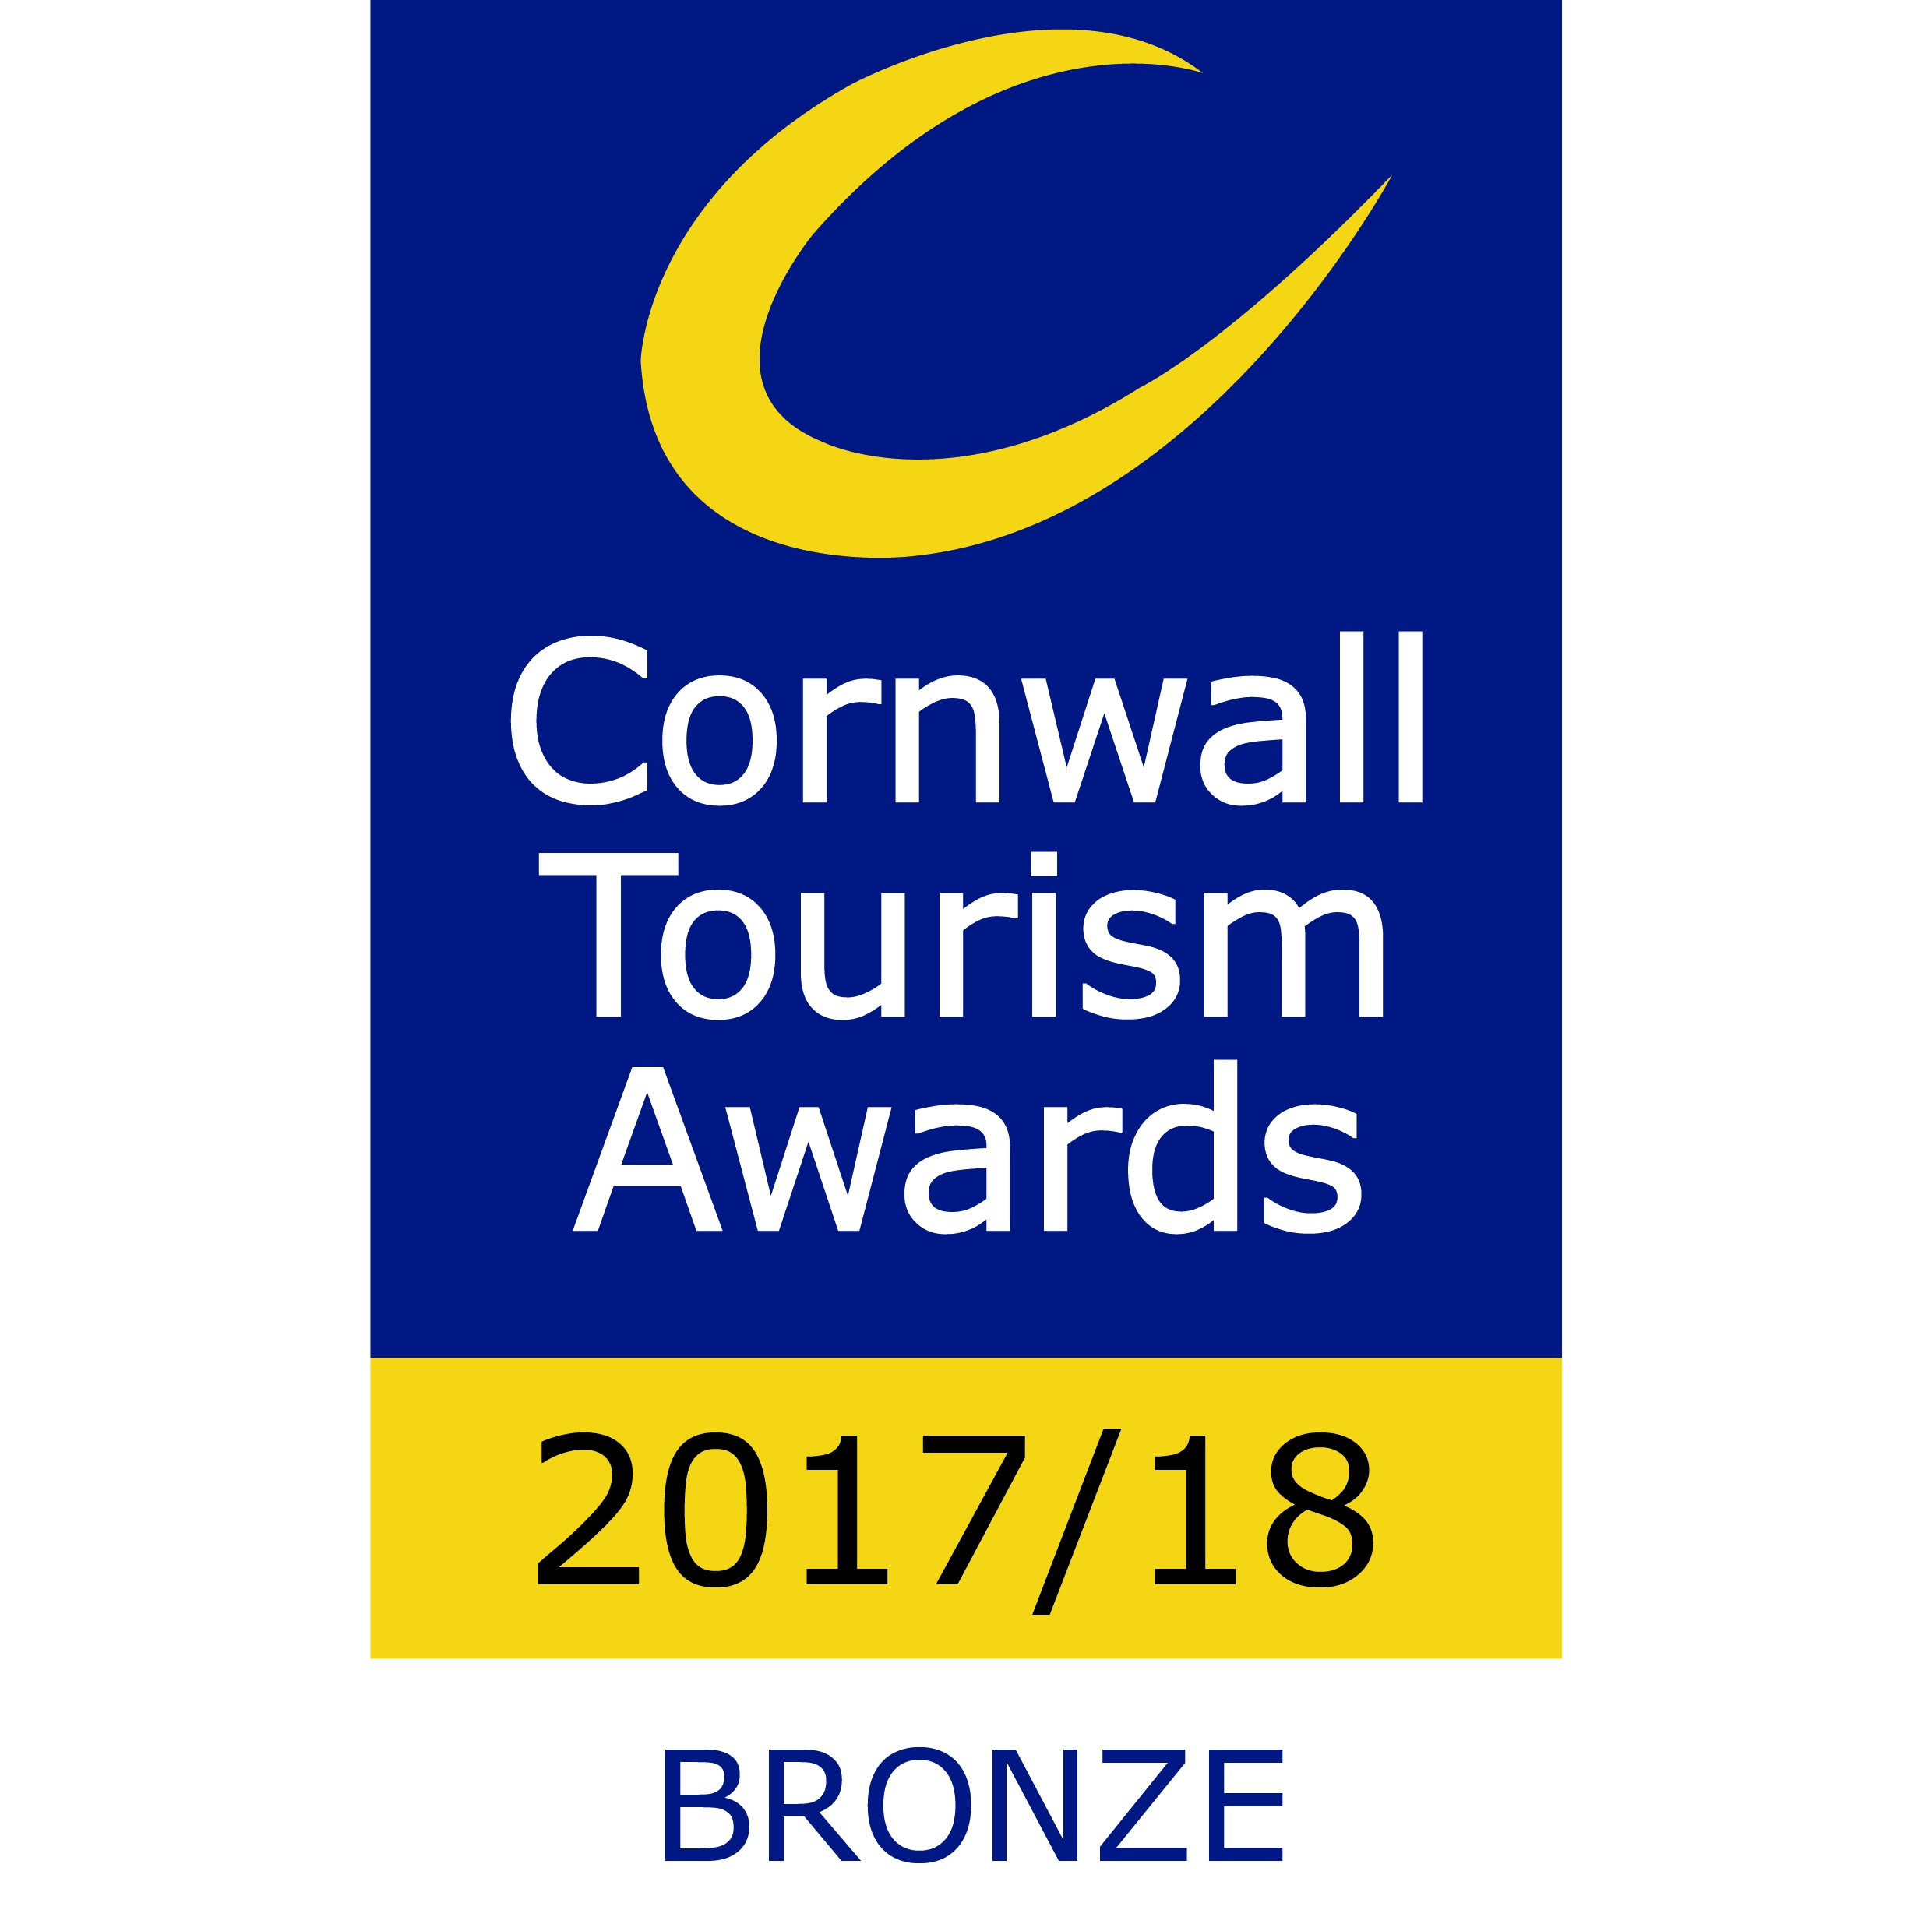 """Helpful, Knowledgeable and Great Service"" Koru recieves award at Cornwall Tourism Award 2017/8"